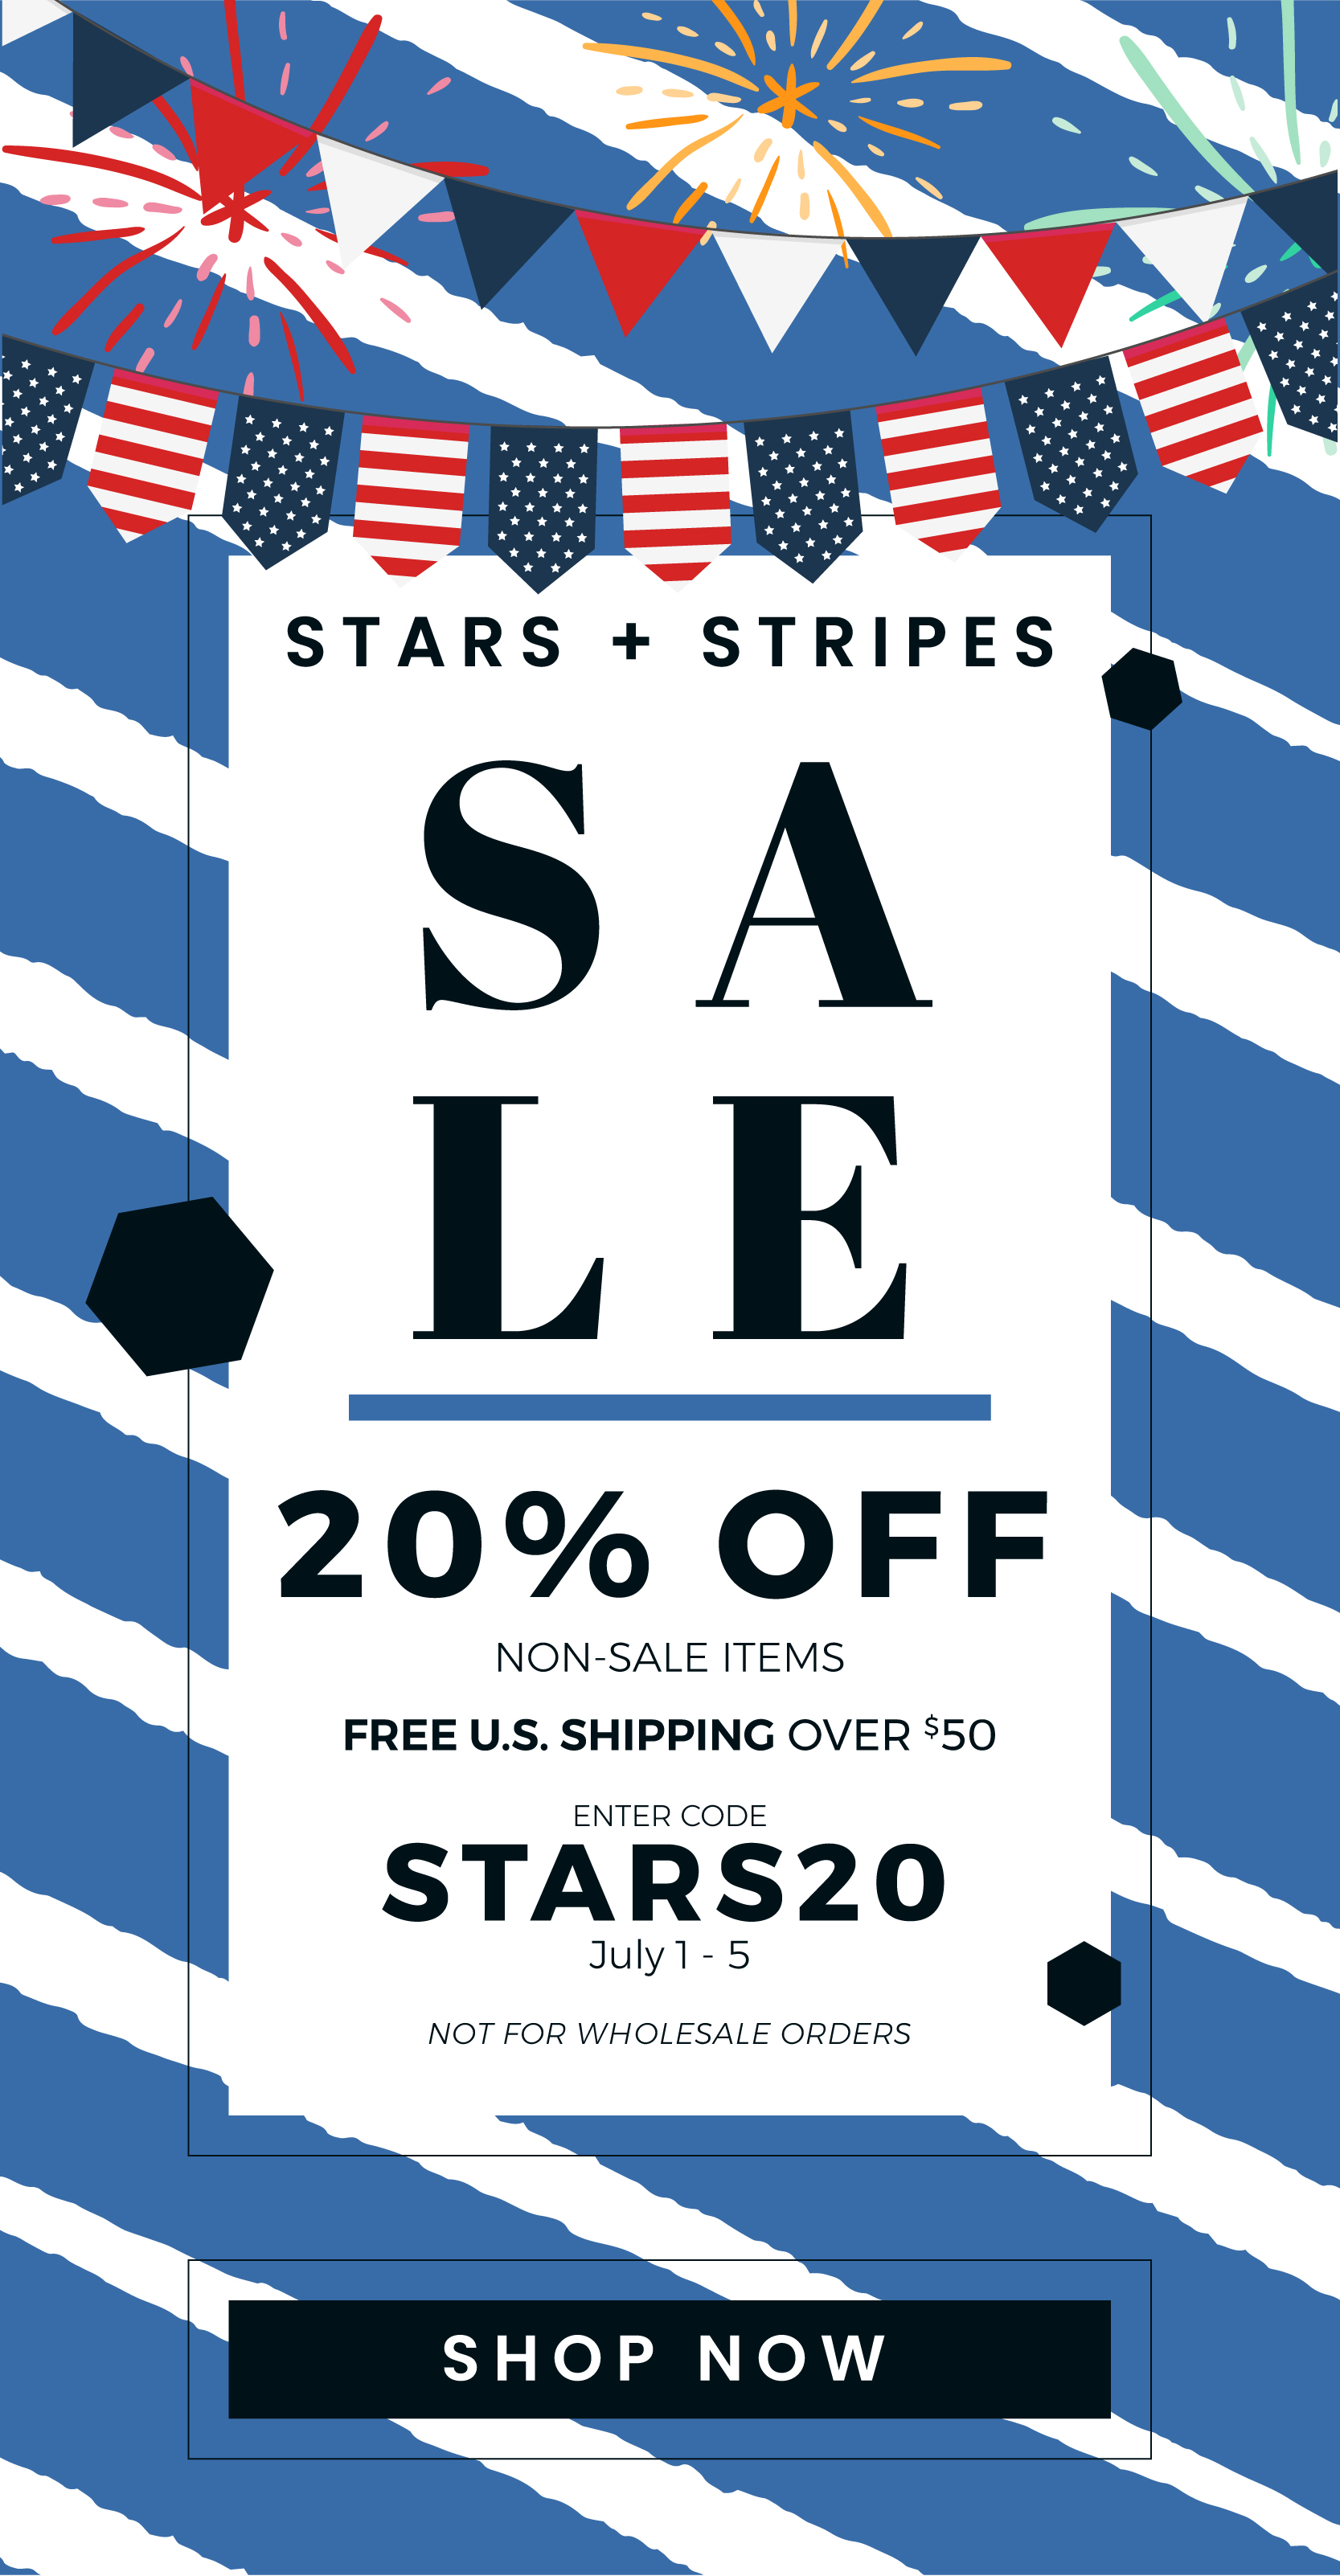 Cue the Fireworks!  Stars + Stripes Sale has begun and you get 20% off your order!